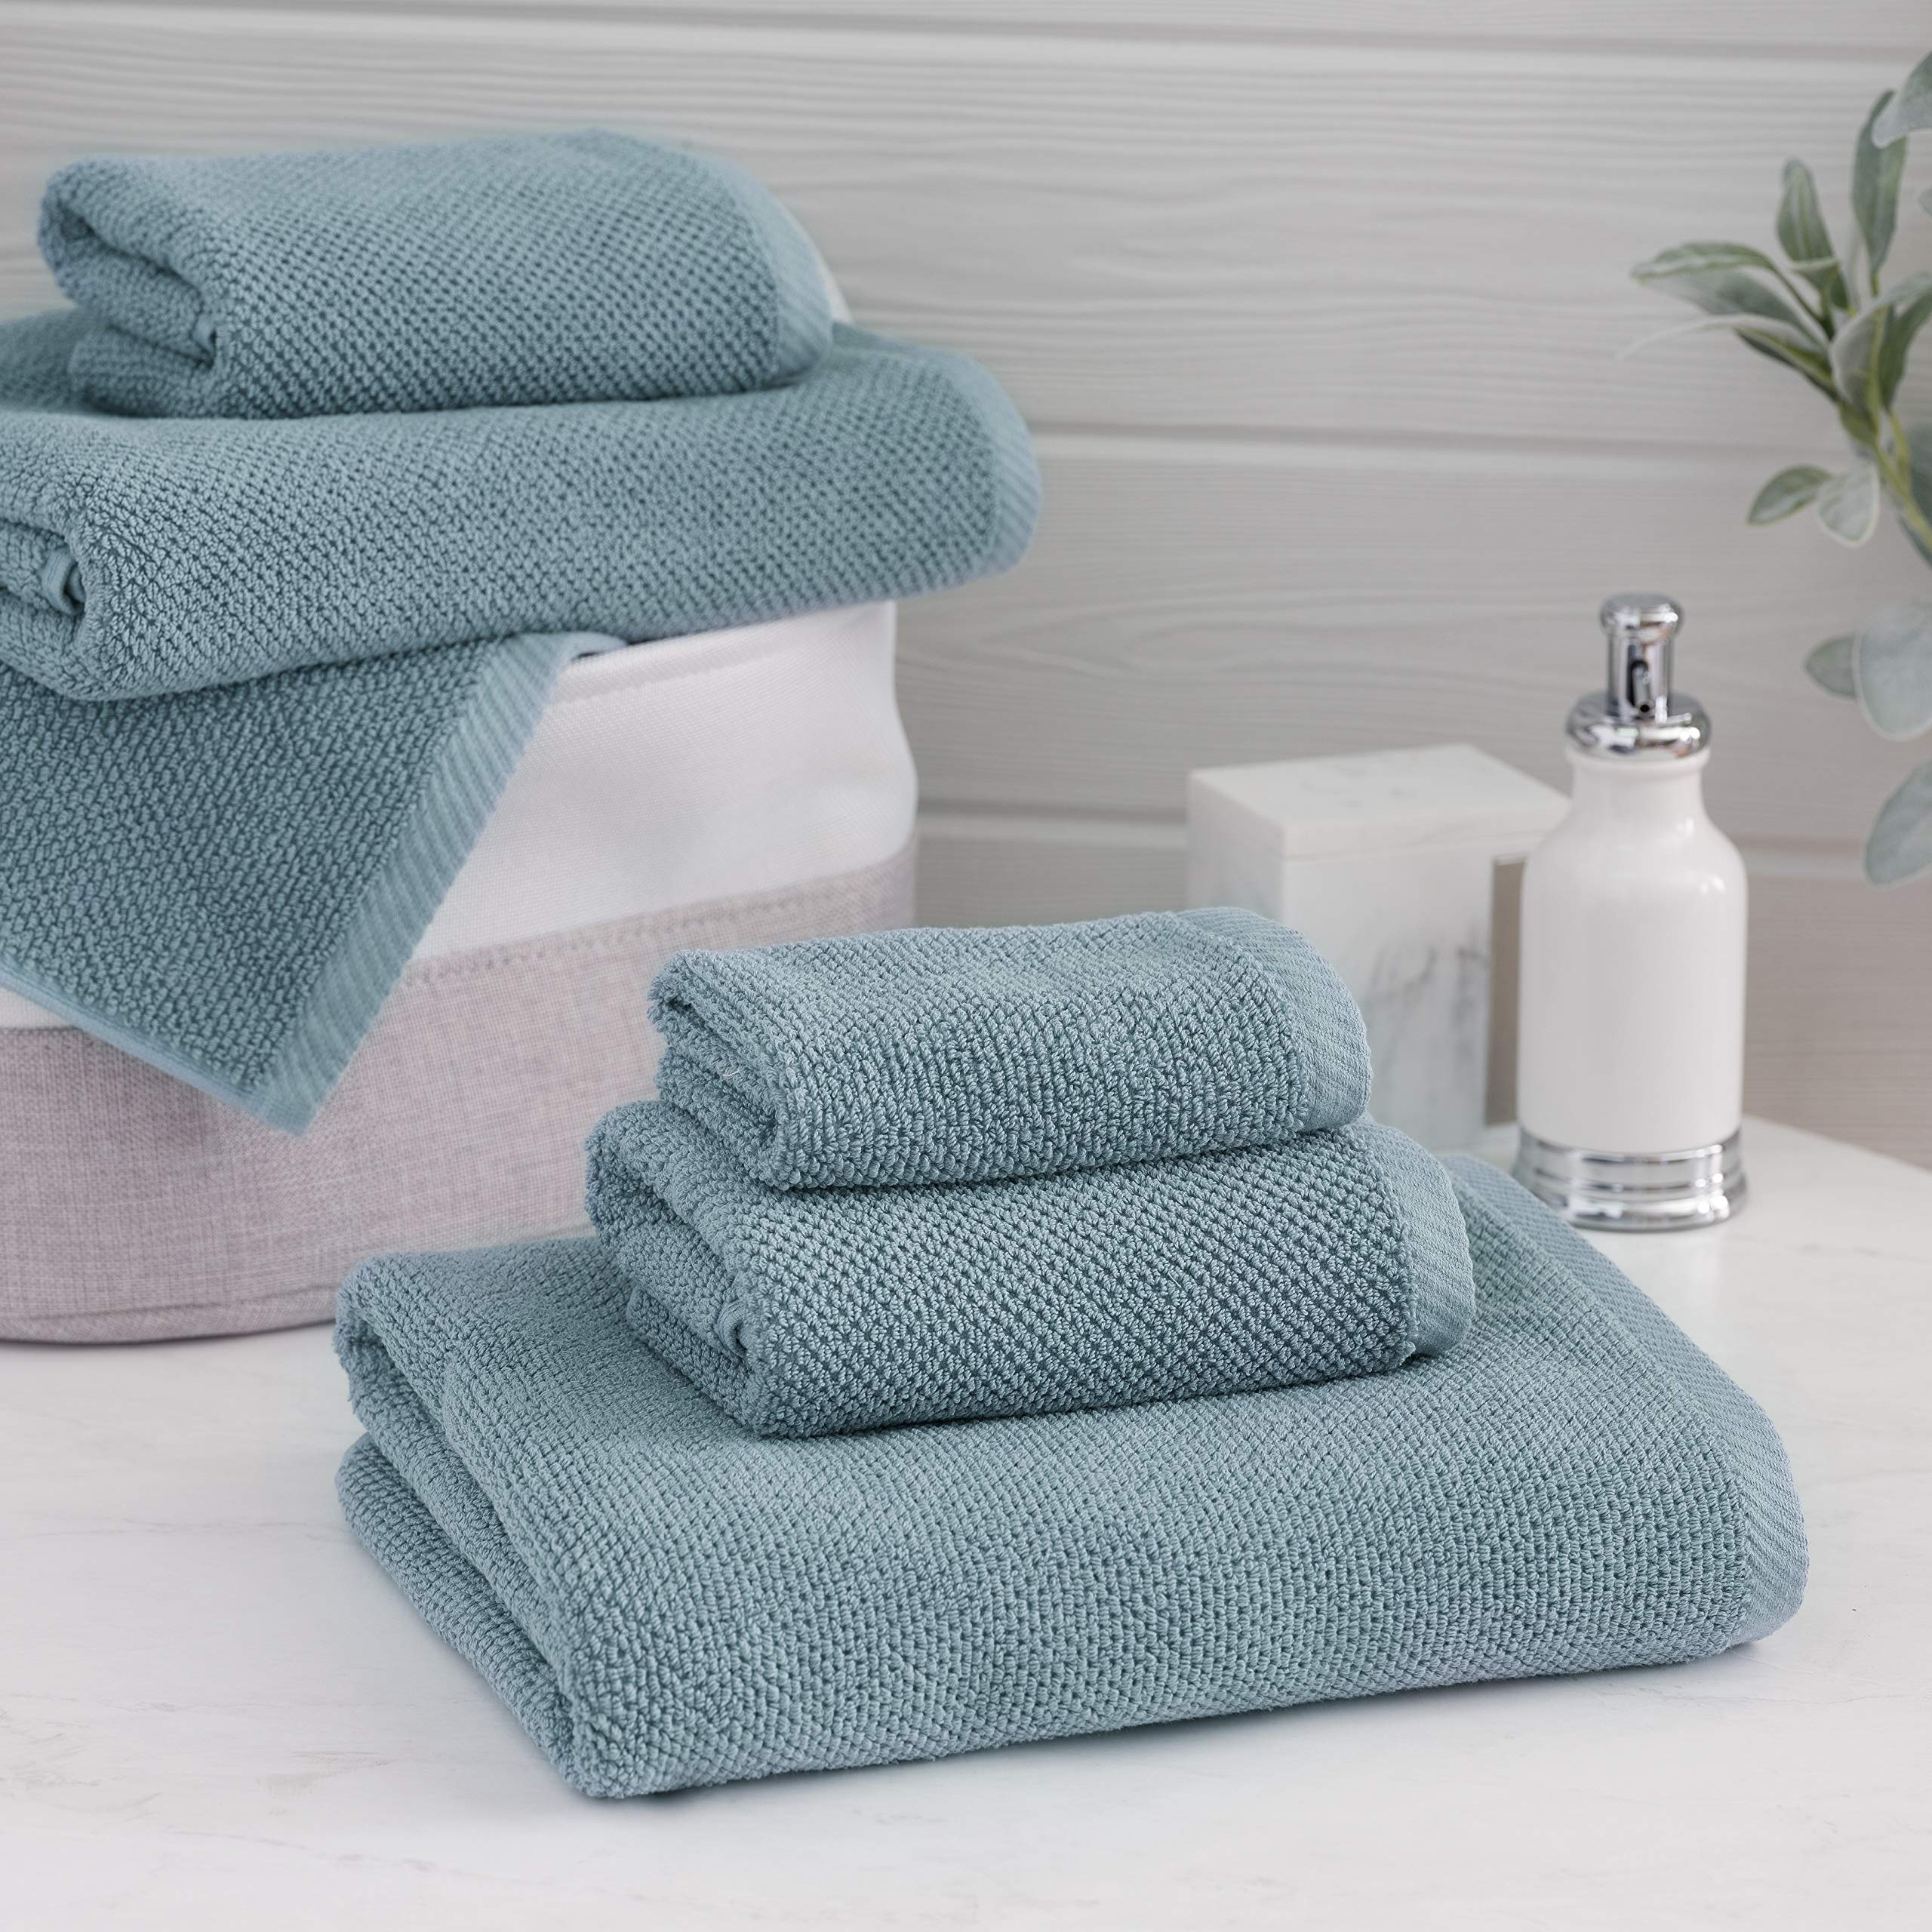 Up to 31% off on Welhome Bath and Bed Linen